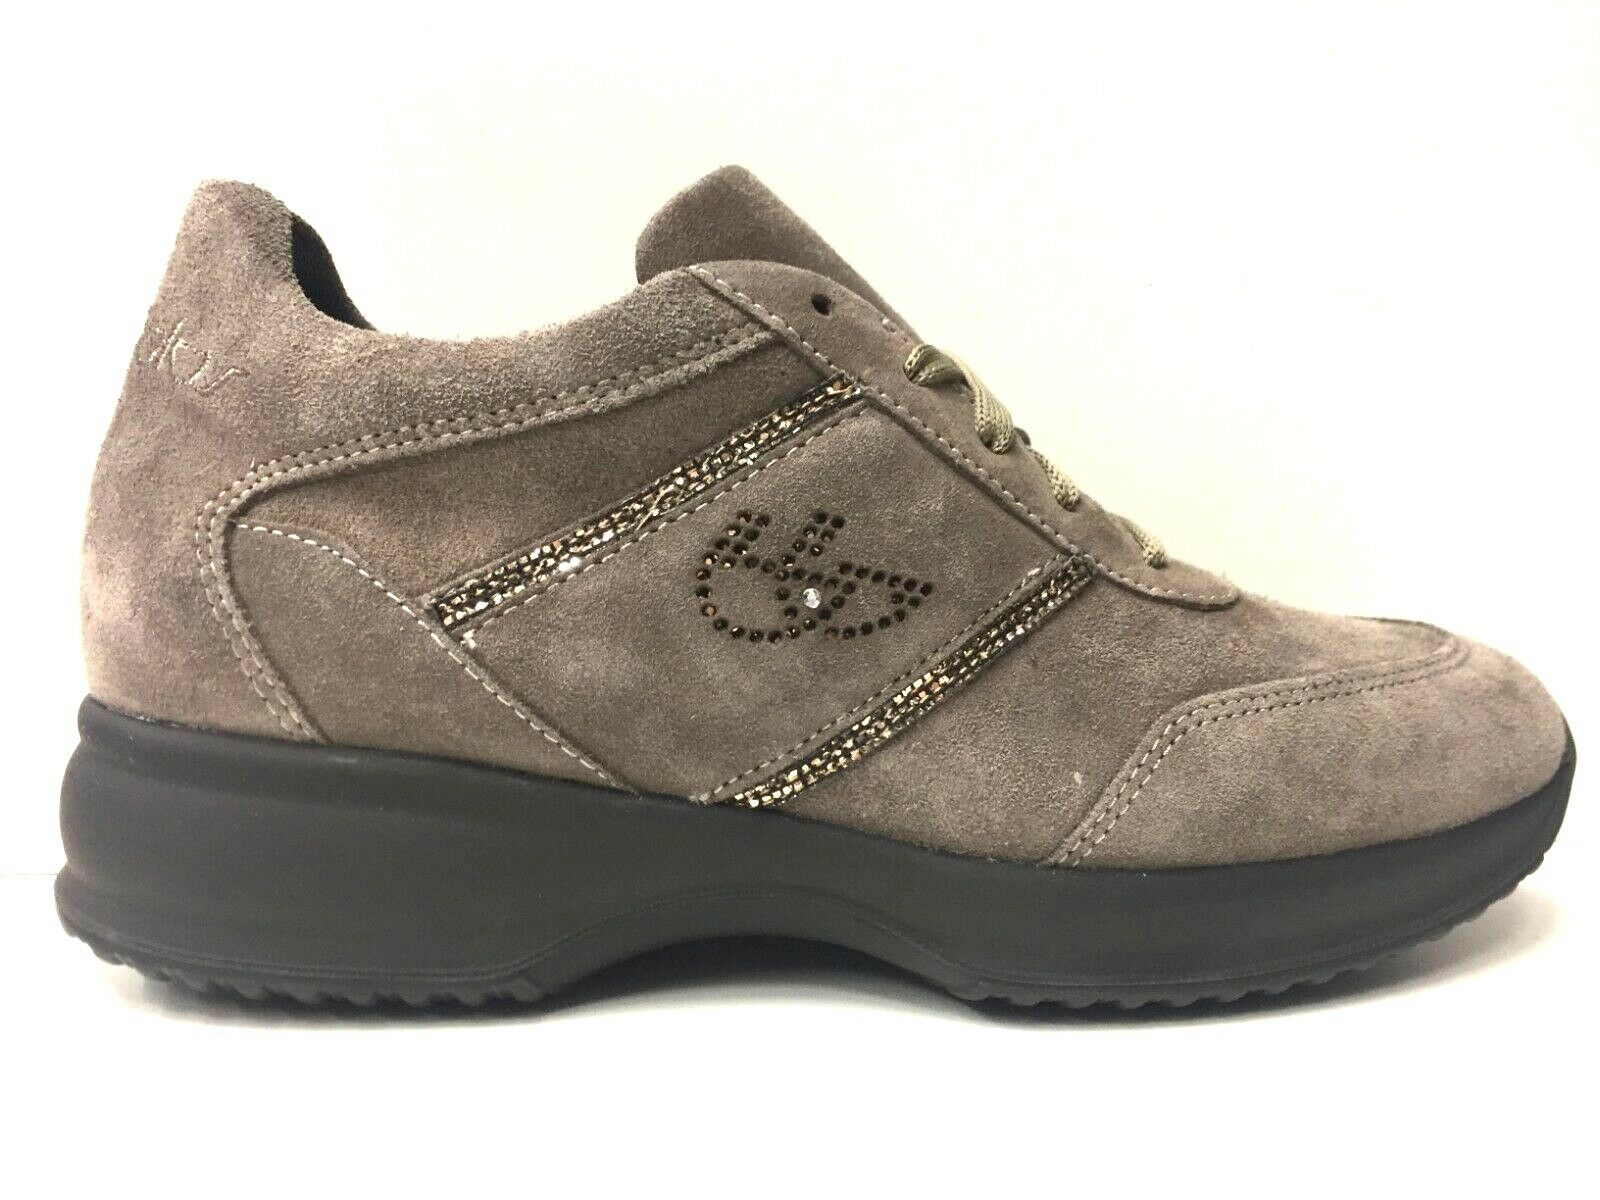 SCARPE SNEAKERS CASUAL DONNA BYBLOS ORIGINALE 695791 PELLE SHOES TAUPE A/I NEW